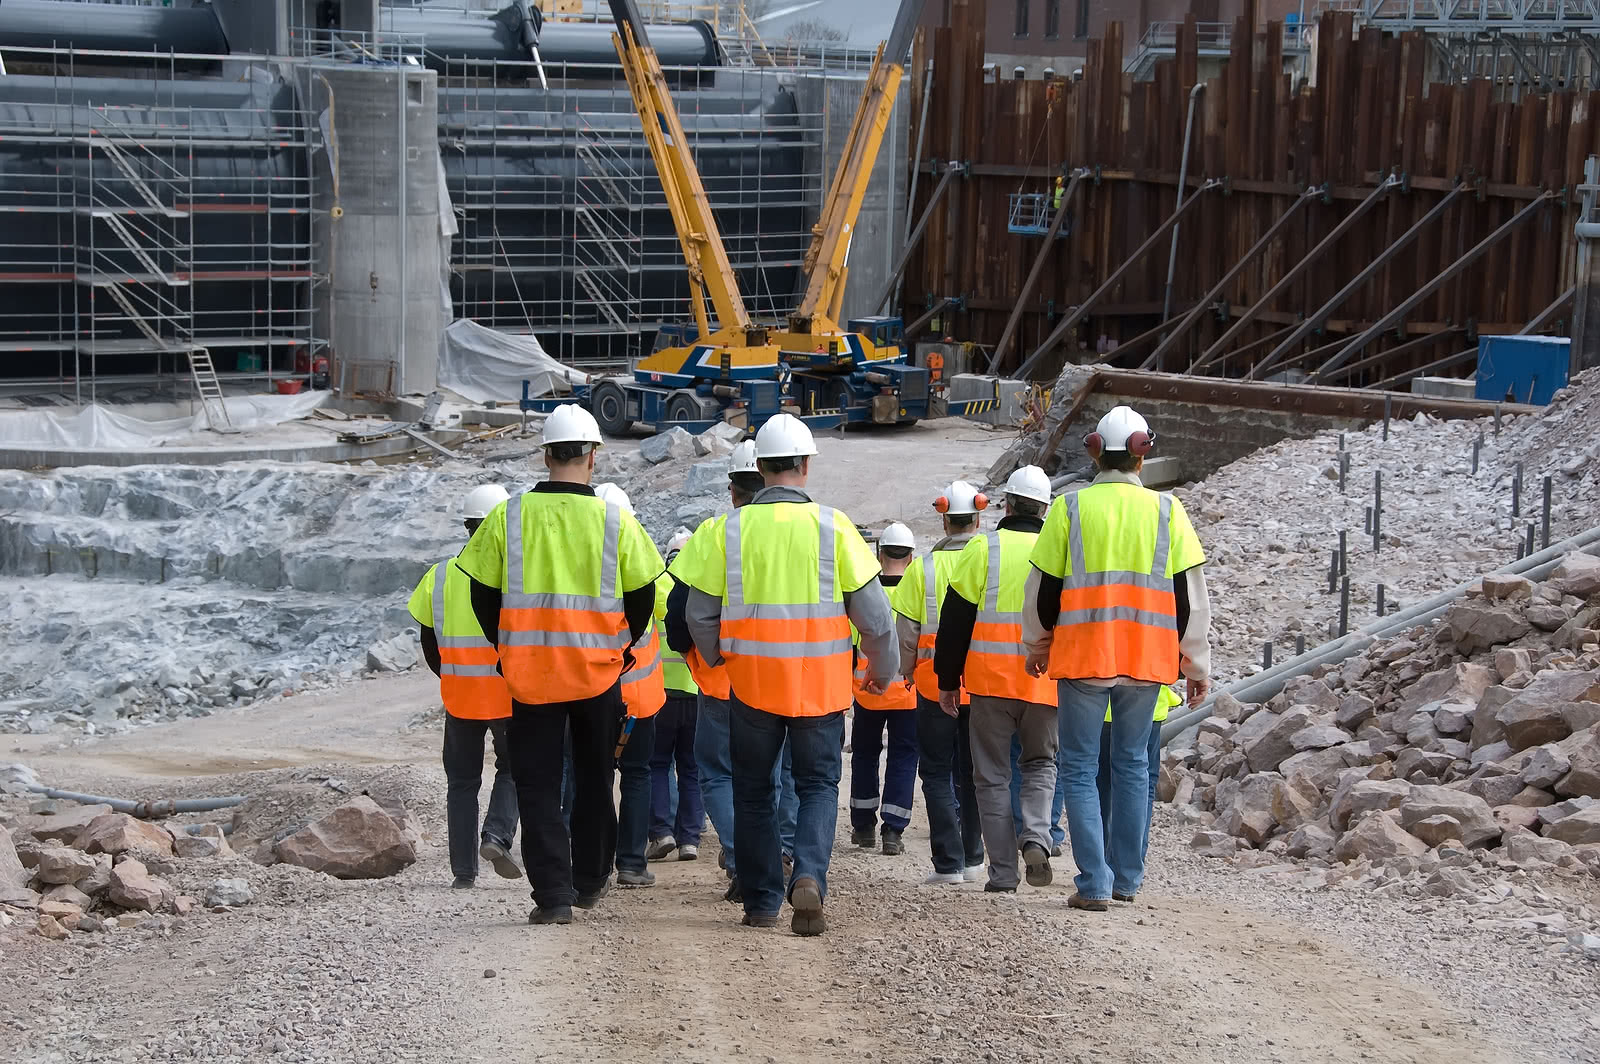 A group of construction workers walking away from a site